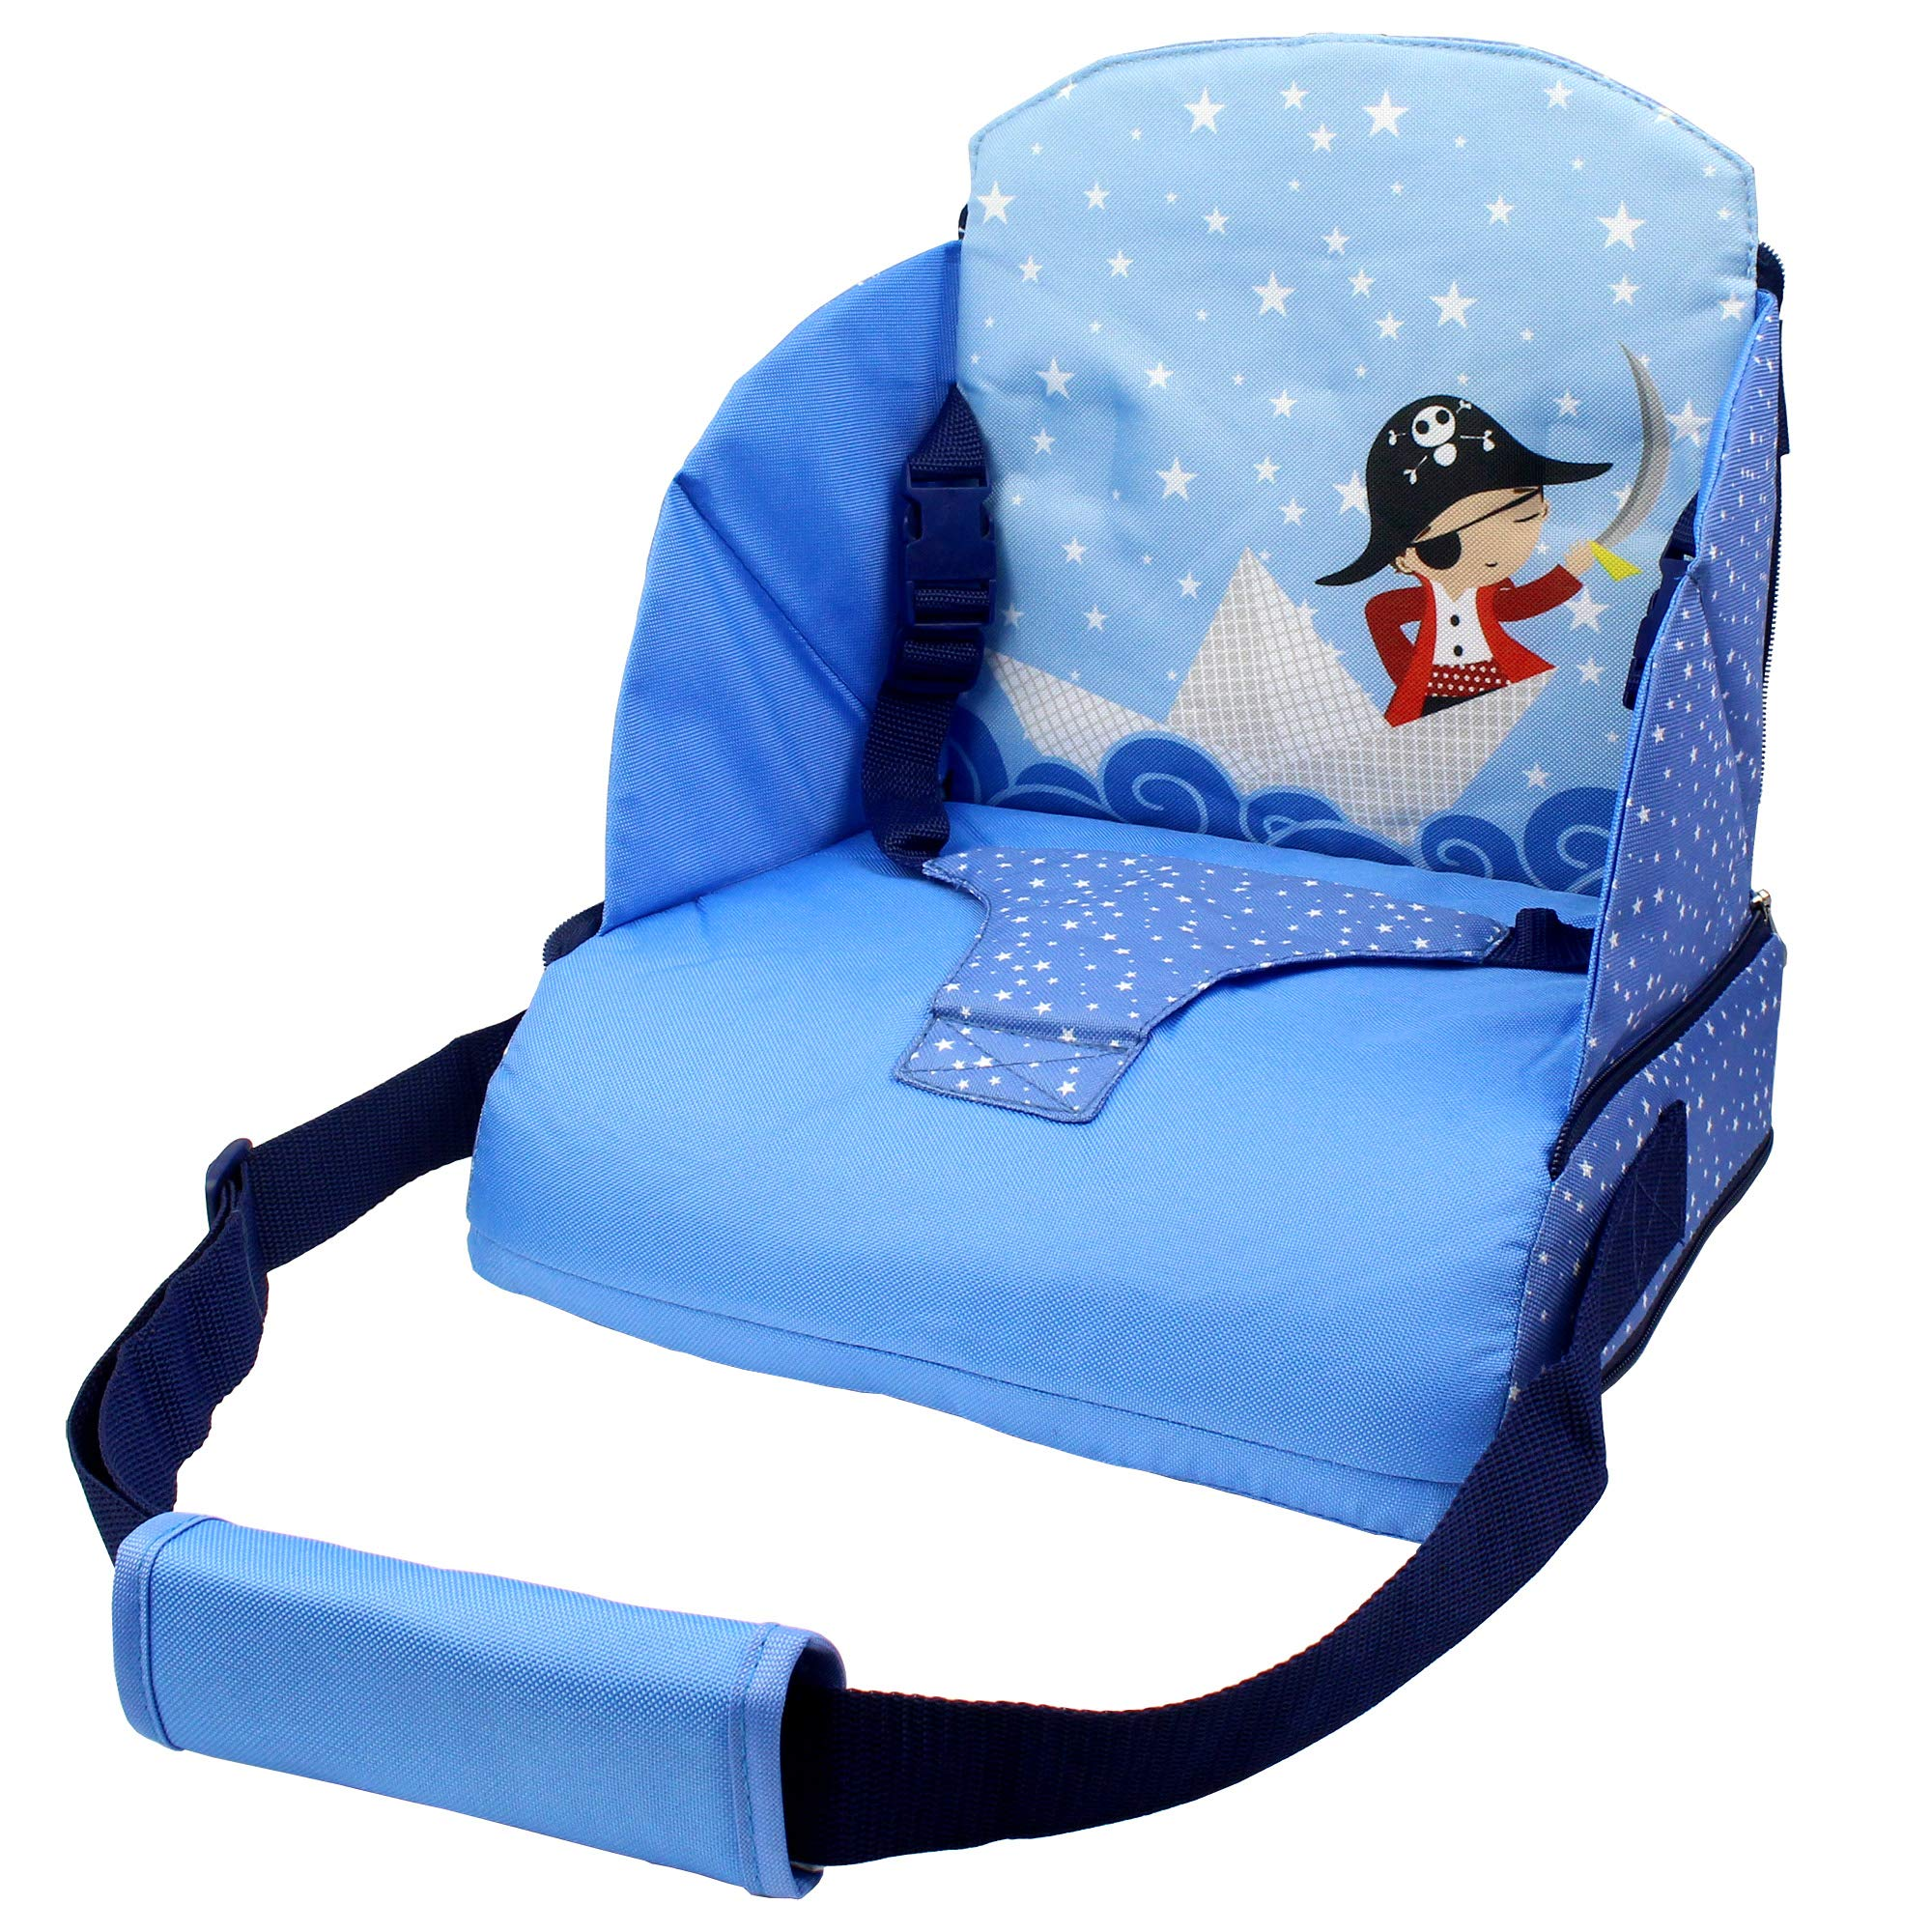 Abetto Baby Toddler Kids Infant Portable Booster Seat for Eating, Foldable/Washable/ Adjustable/Travel Dining Chair - Blue by Abetto